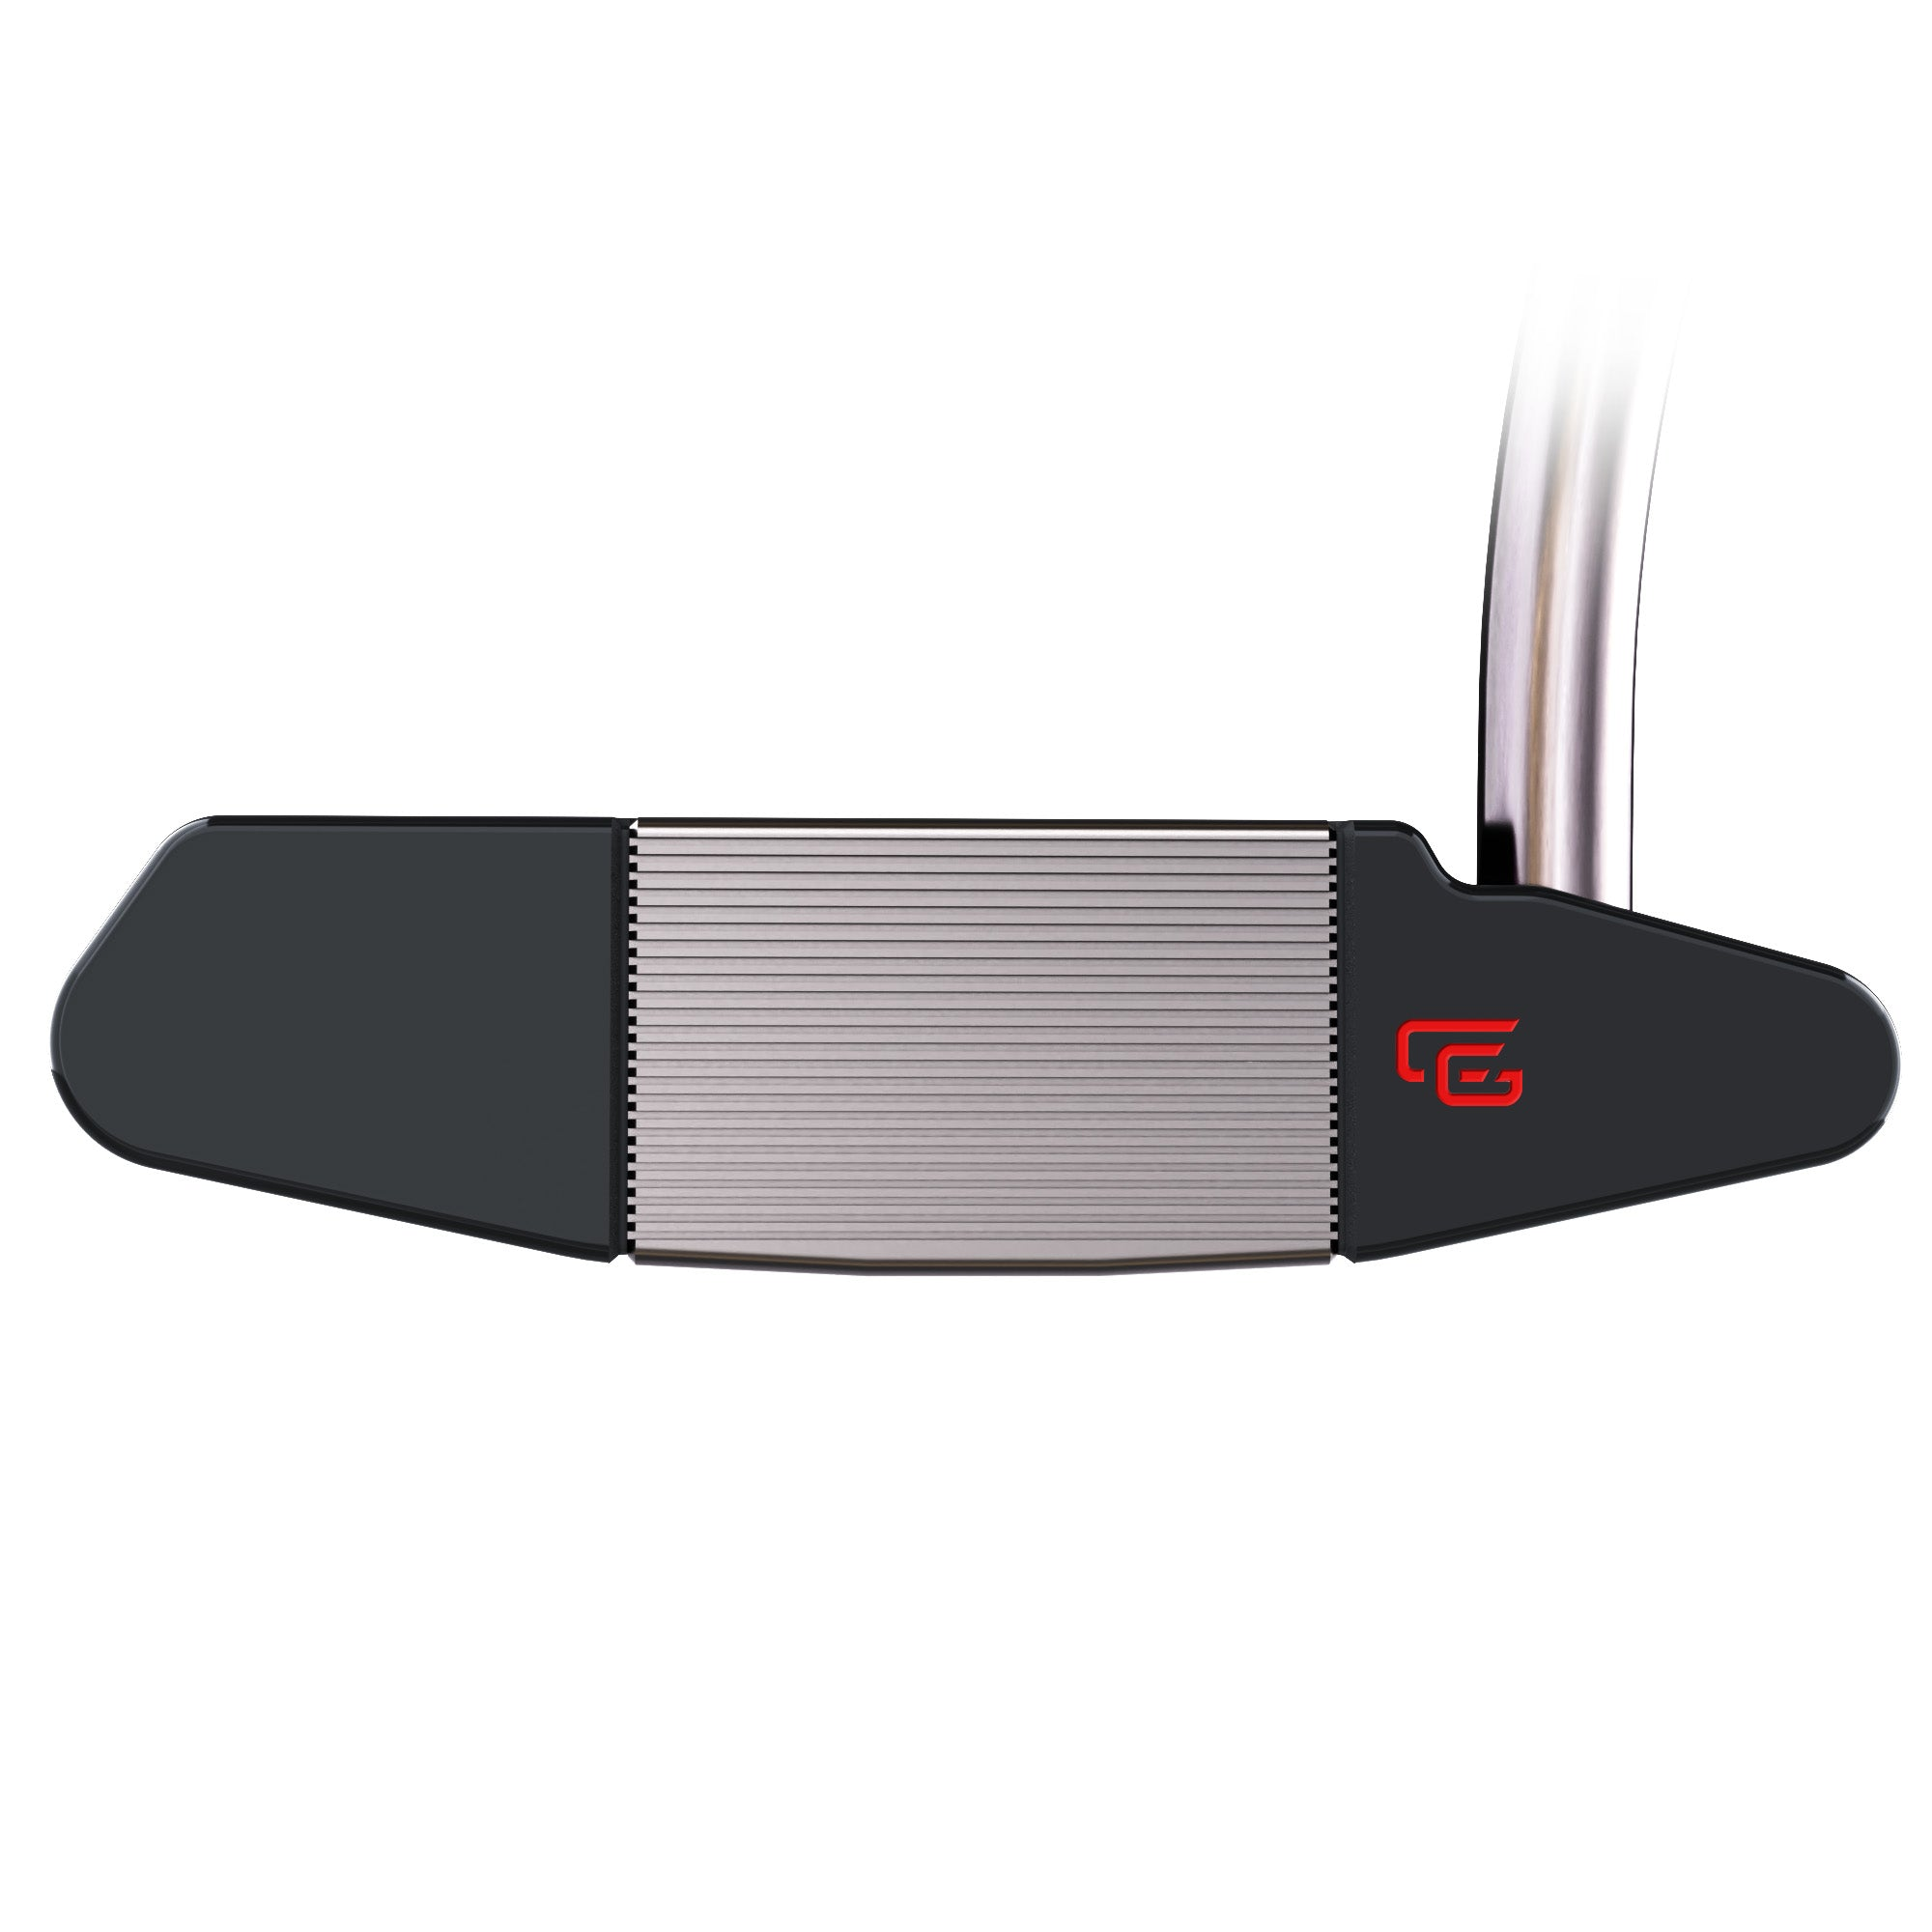 CĀG golf 33FIVE BD Putter, milled face and scorelines